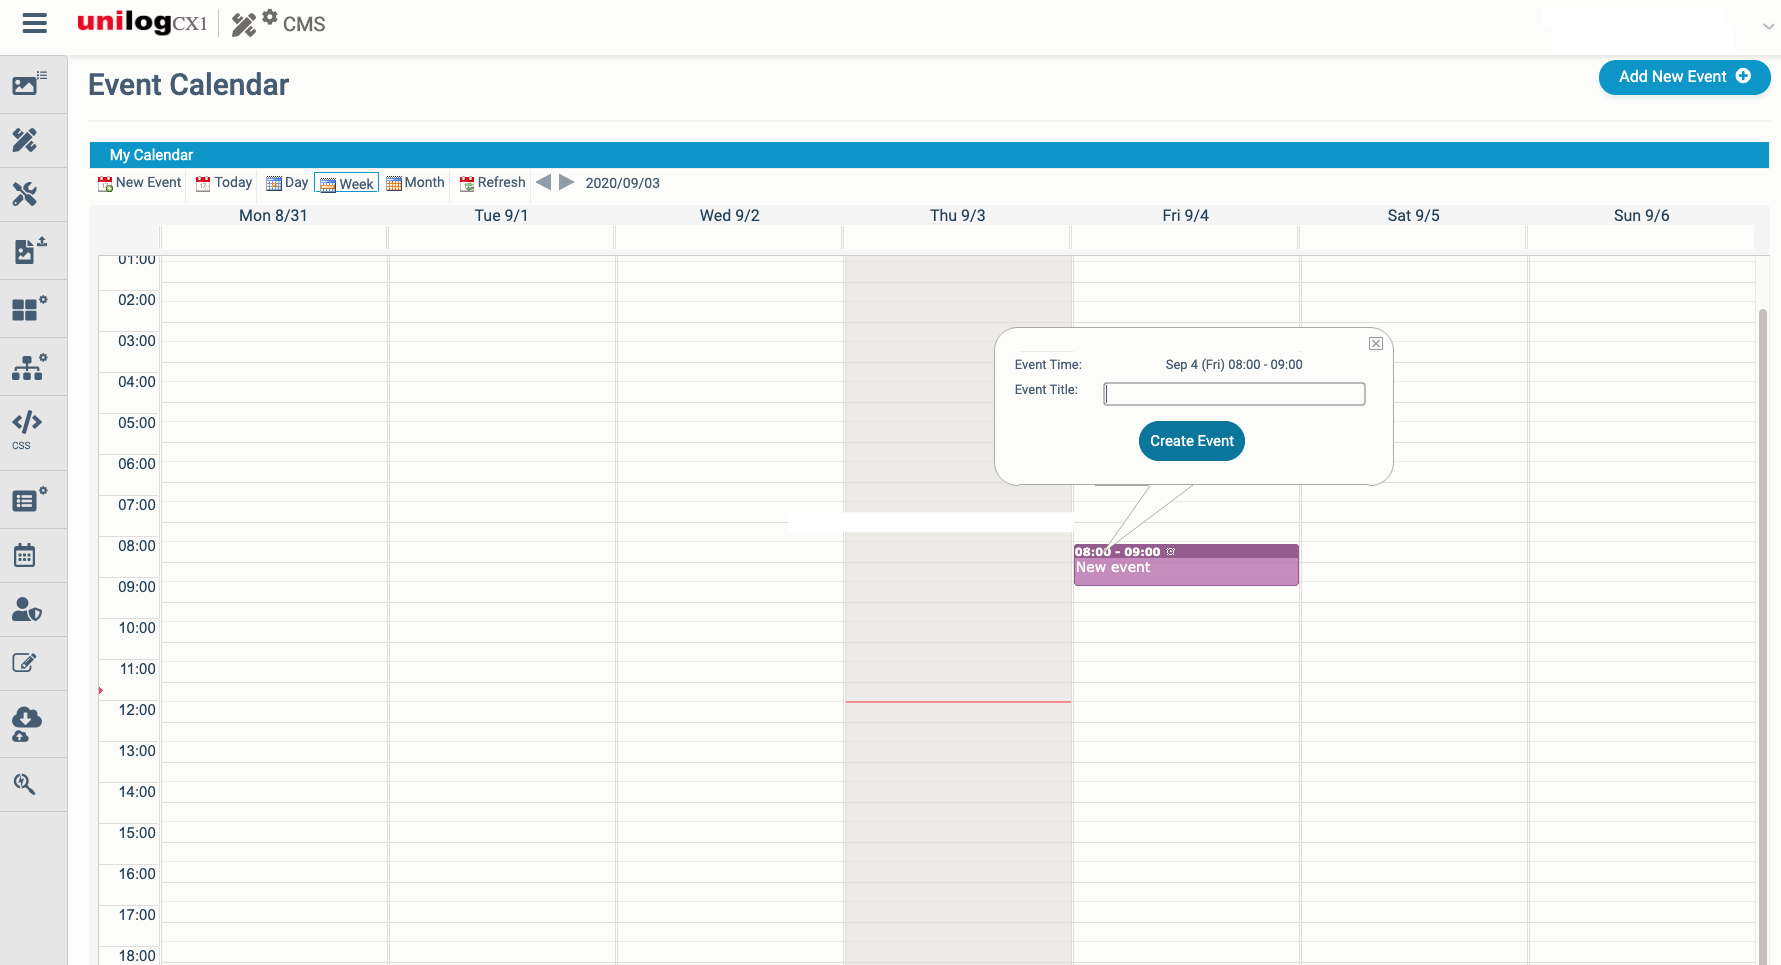 Unilog CMS- Includes the ability to schedule events with Event Management tool